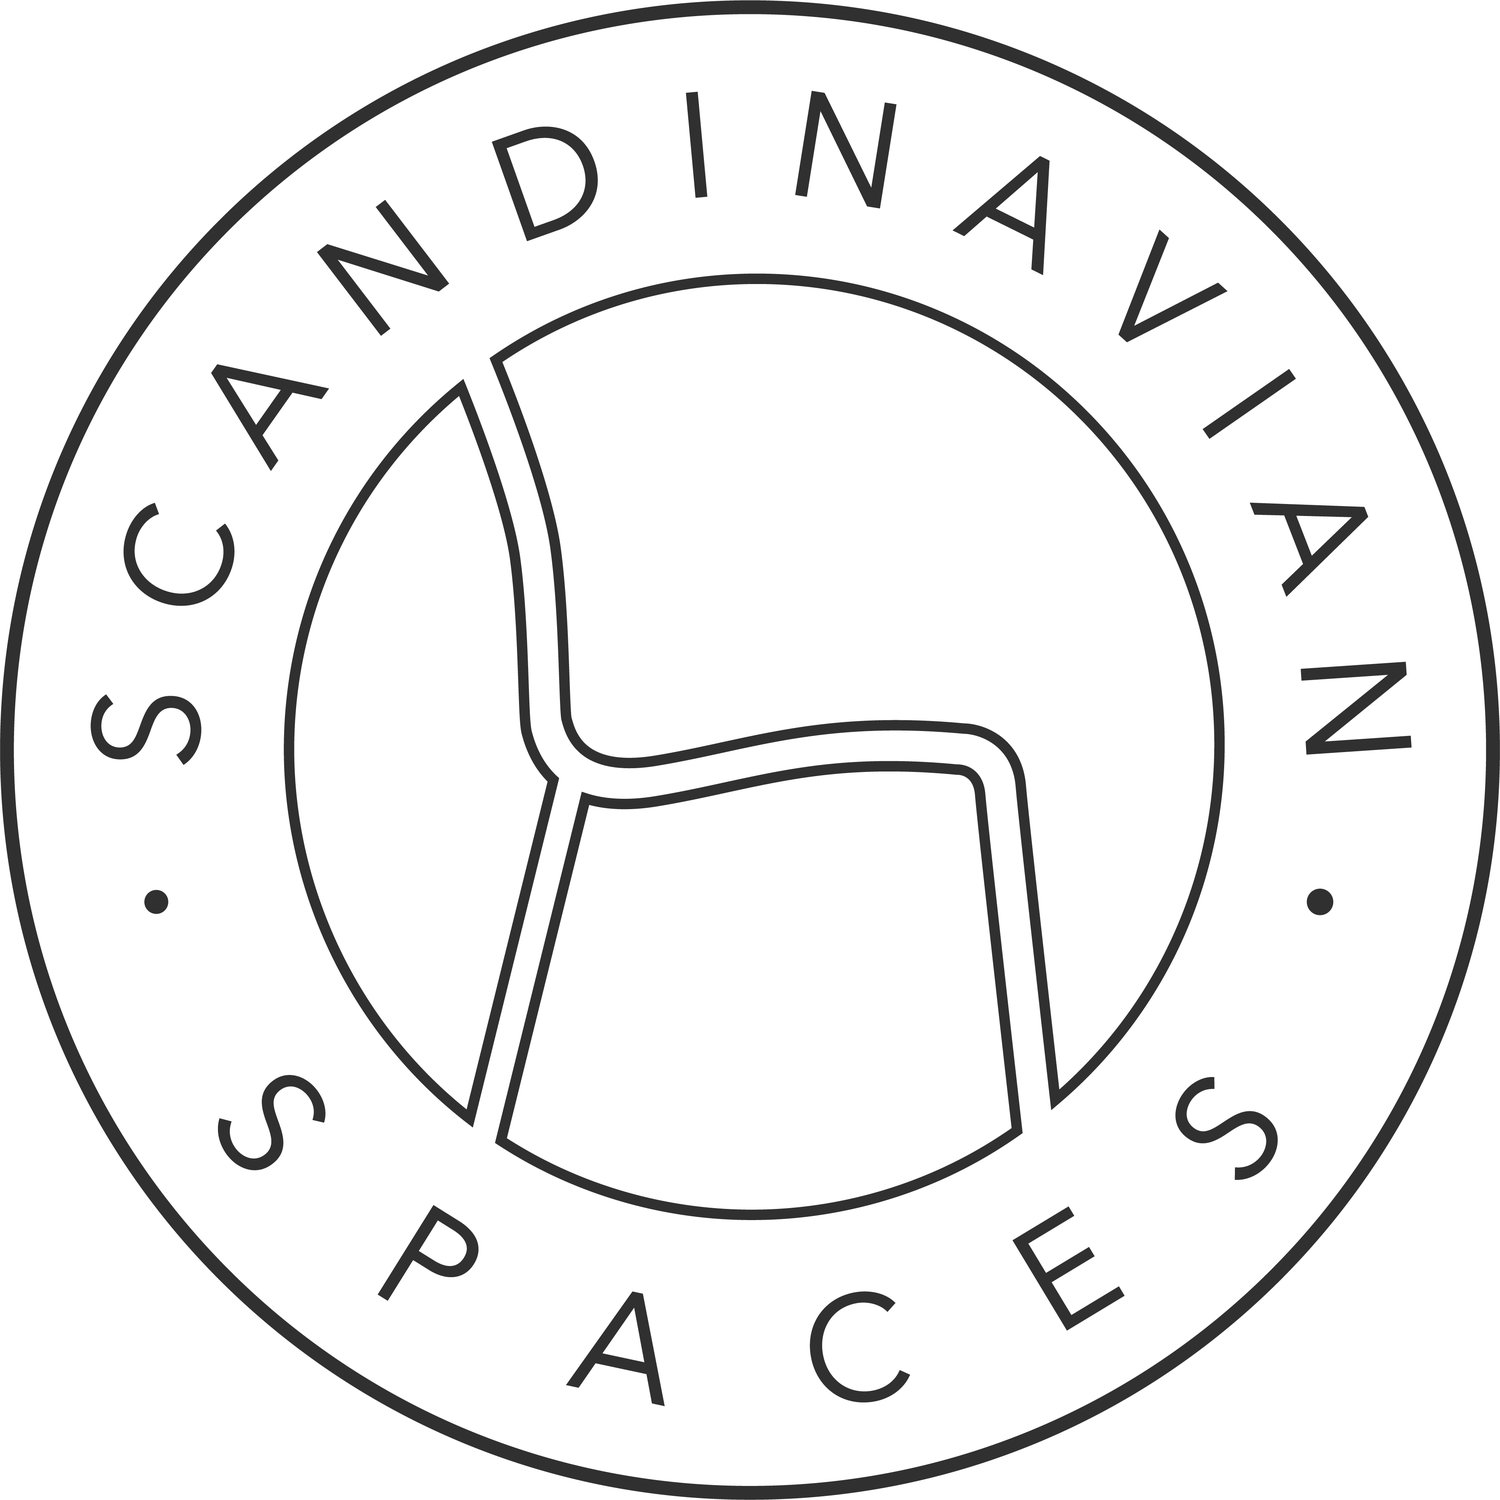 Furniture from Scandinavian Spaces    |    Chicago IL   |   Austin TX    |    New York NY   |    USA and Canada